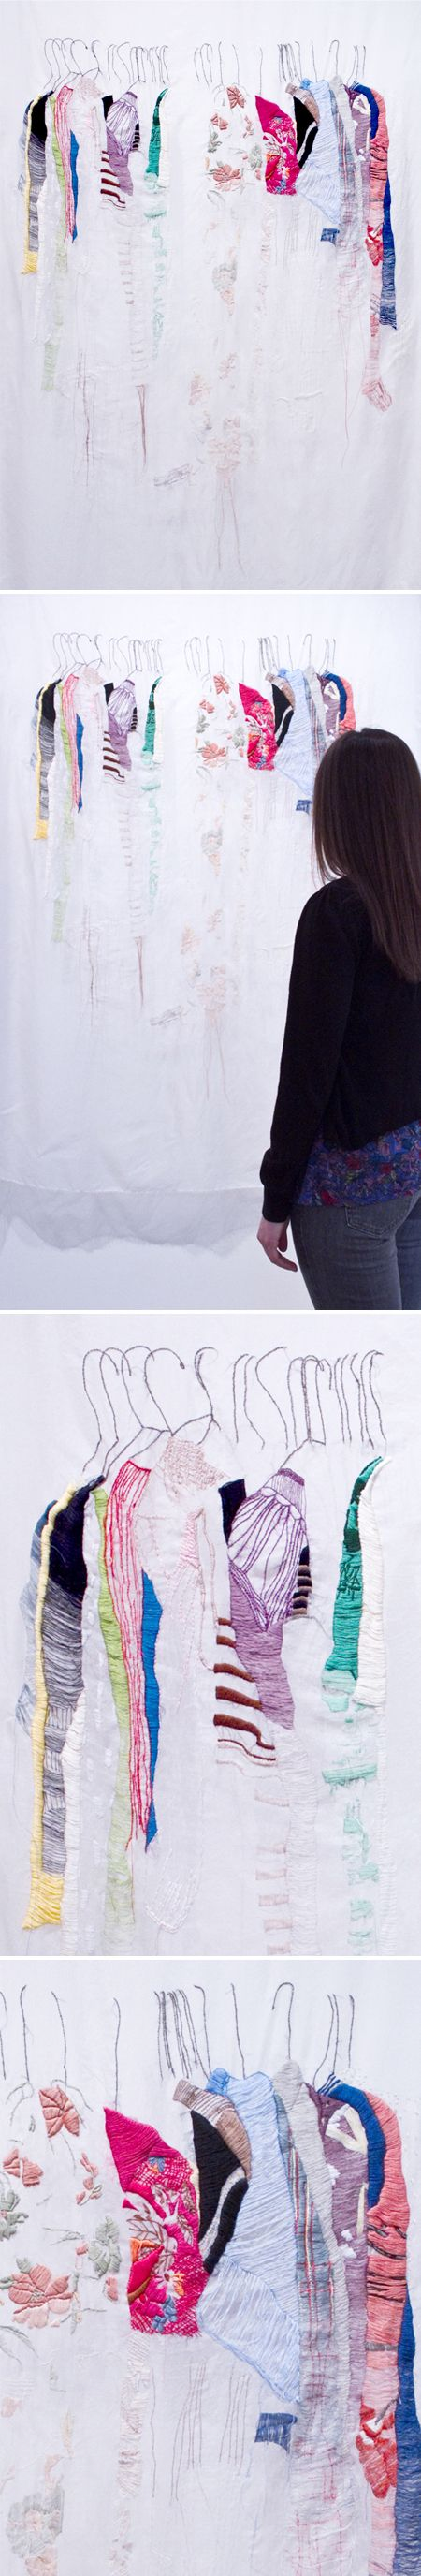 "allison watkins - ""my closet in san francisco"" {embroidery}"